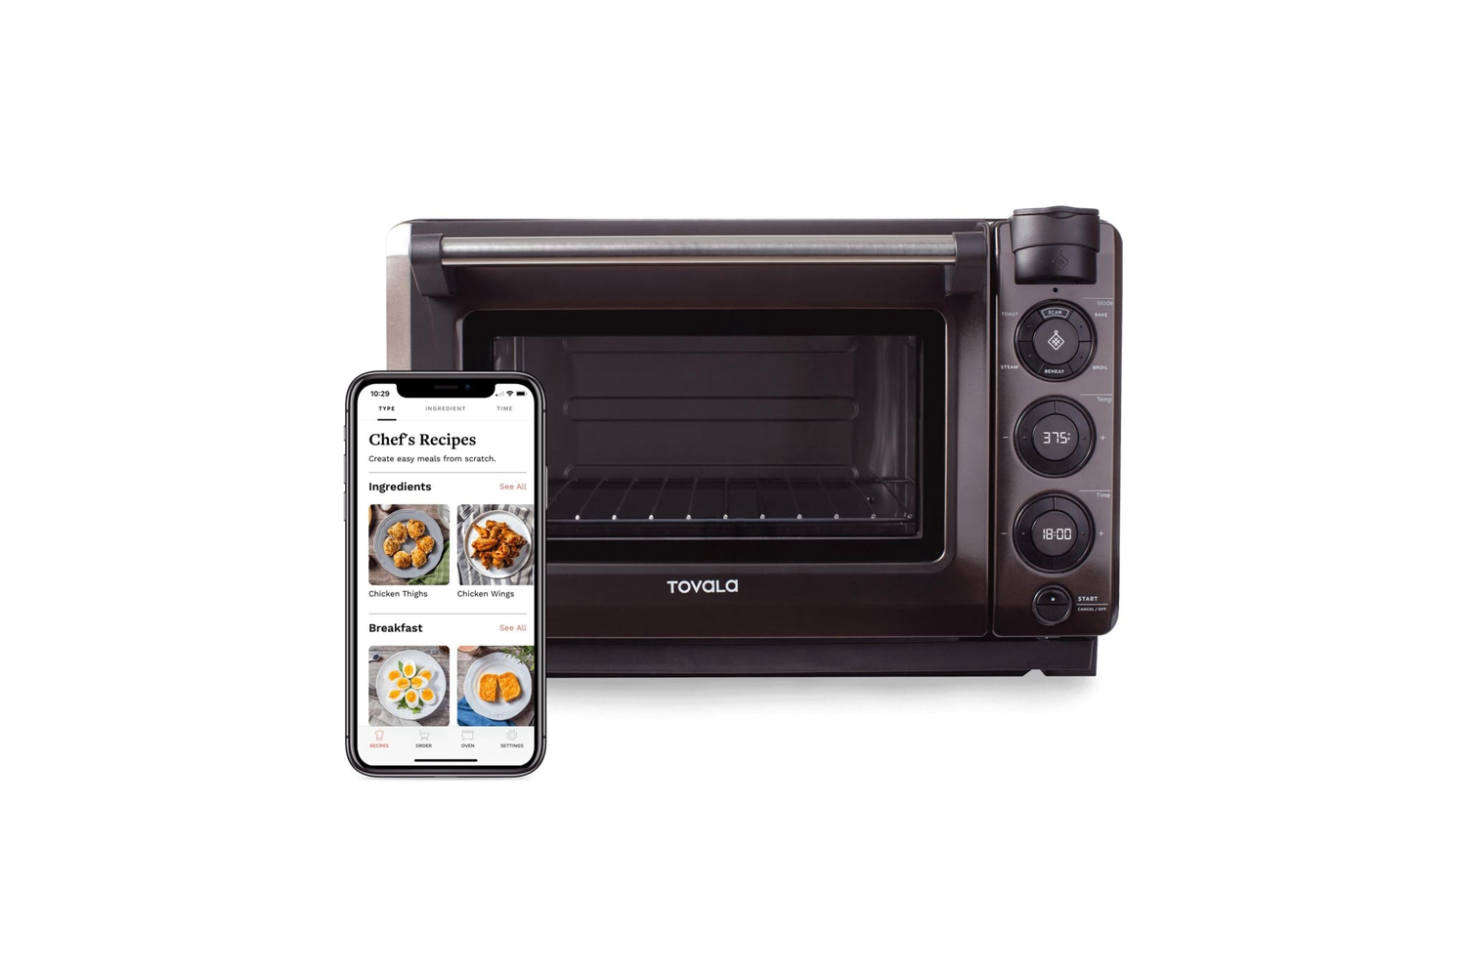 The Tovala Steam Ovenhas a barcode scanner, which allows you to scan items you bought at the grocery store, or meal kits purchased through Tovala and let the oven do the heating, timing, and cooking. The oven is $349, and includes the option for an accompanying meal kit subscription.